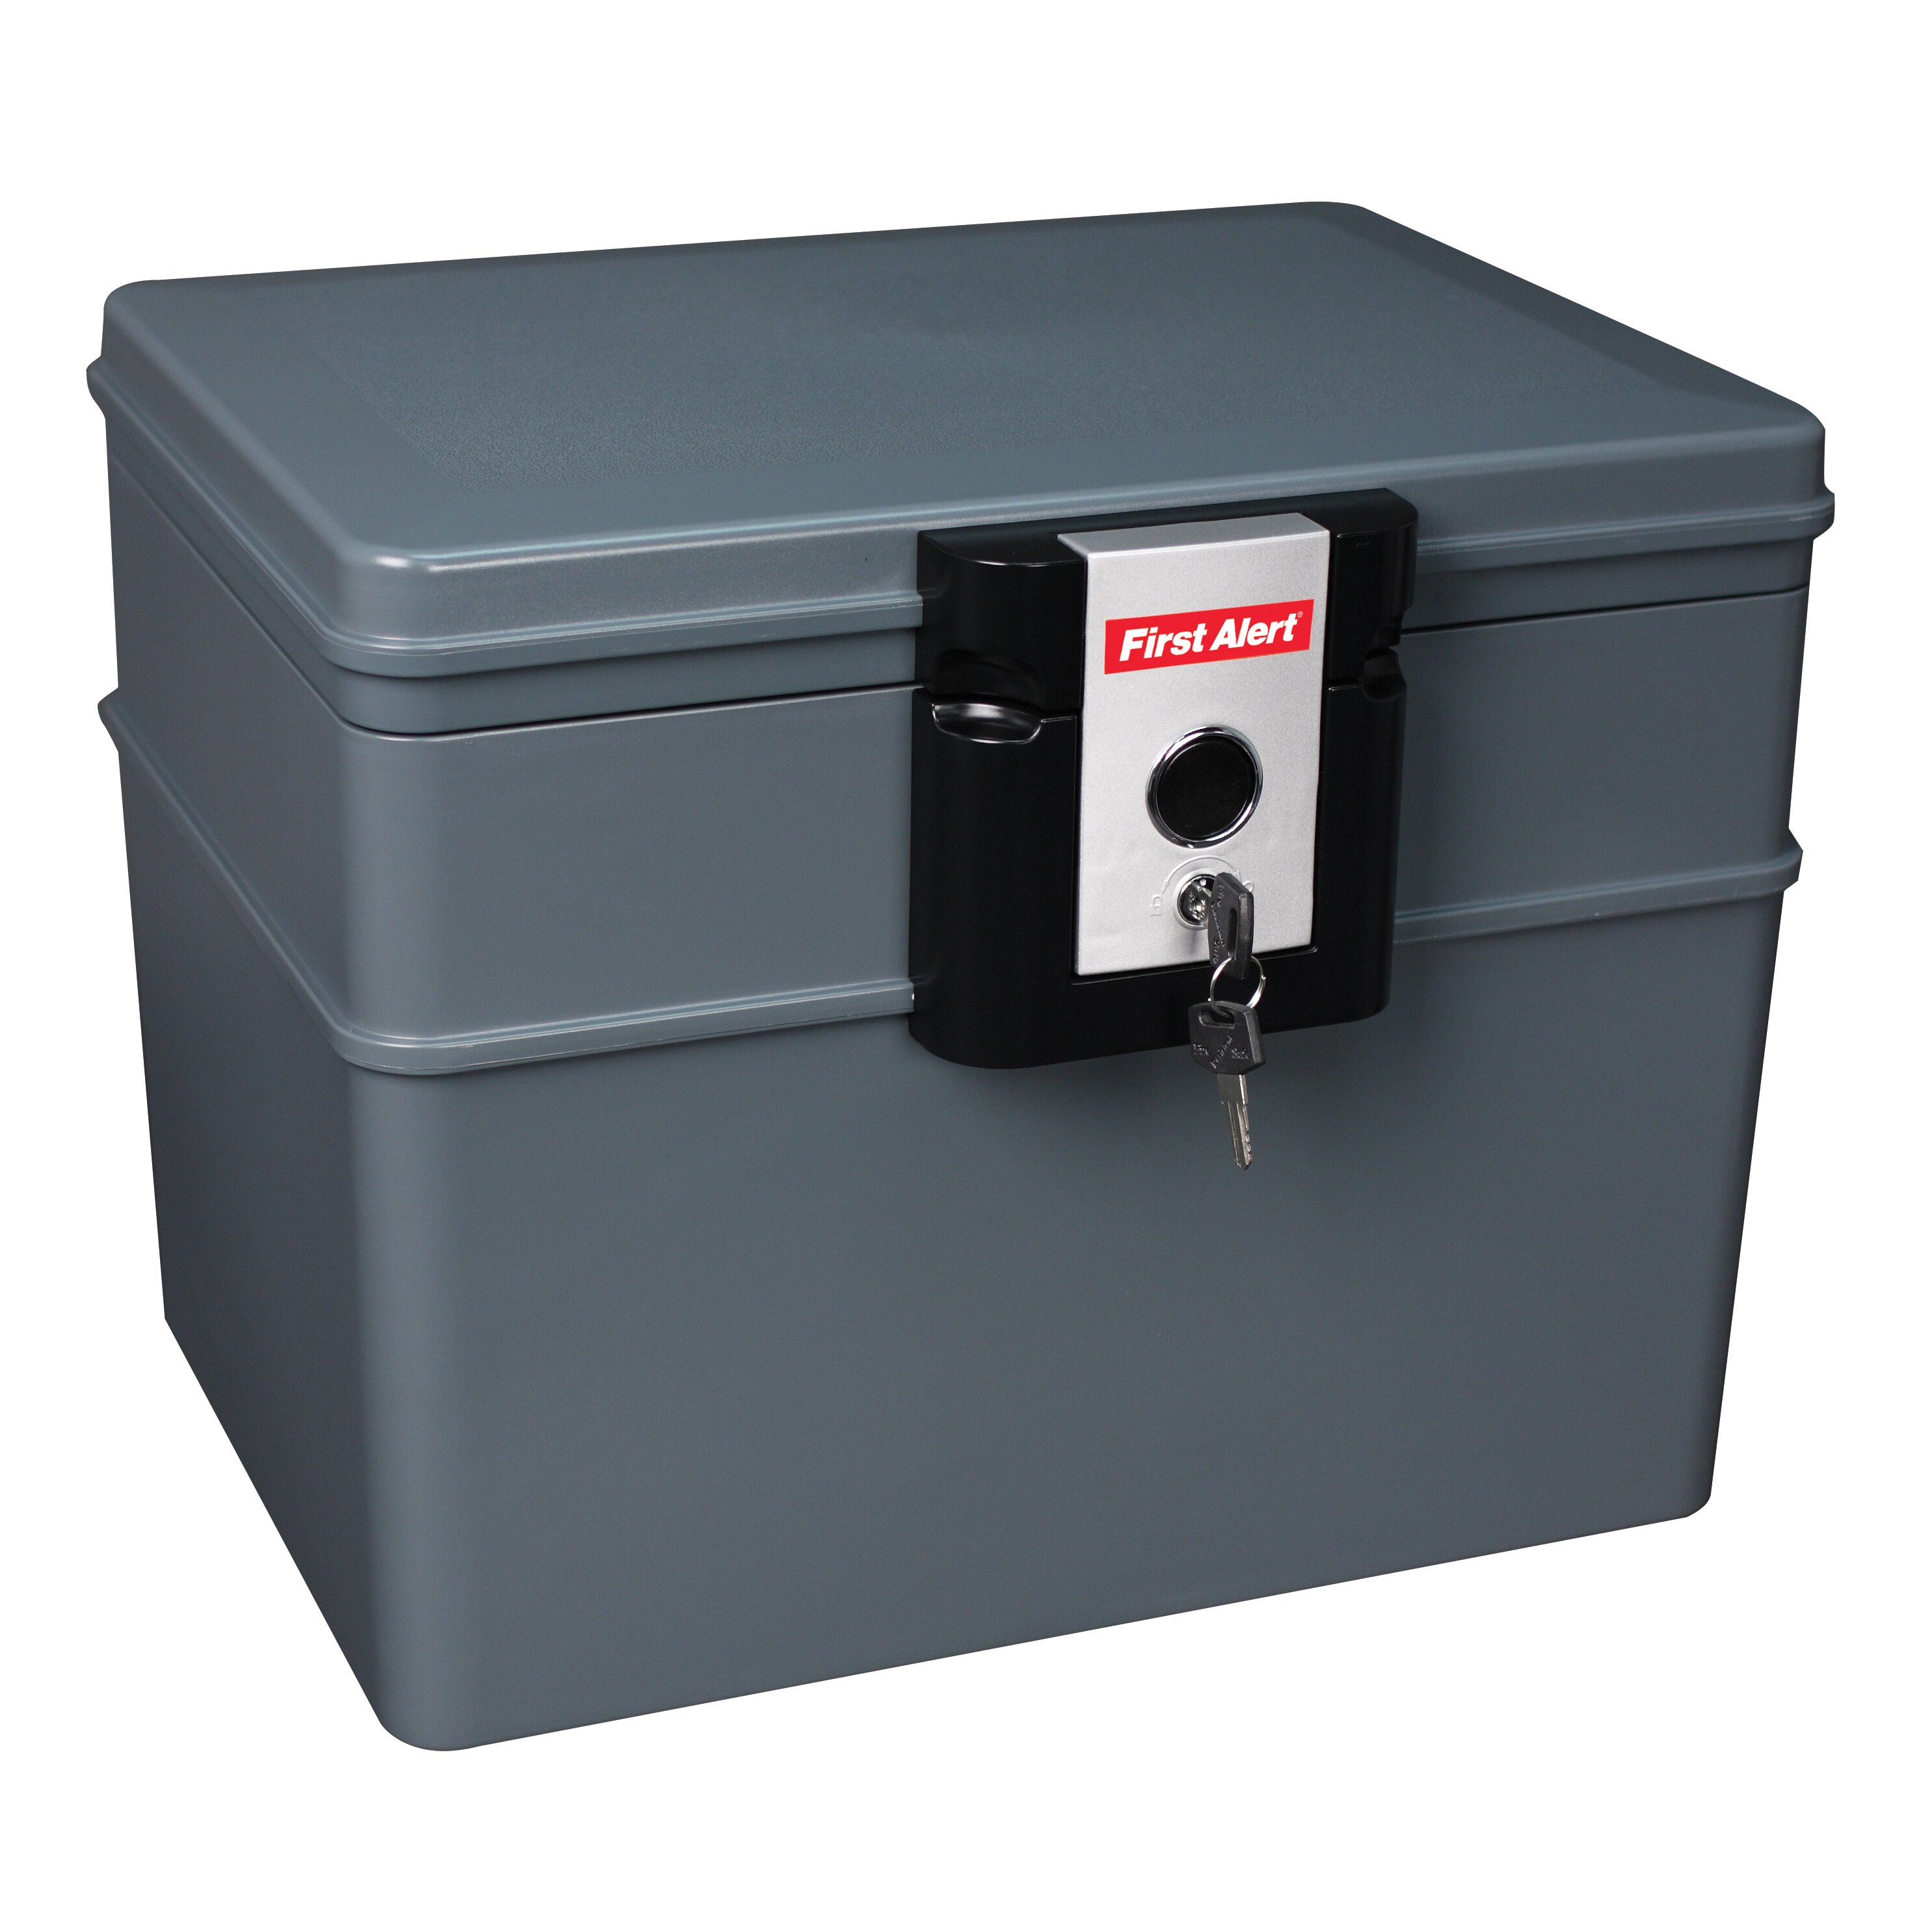 First Alert Waterproof Fireproof File Safe With Key Lock